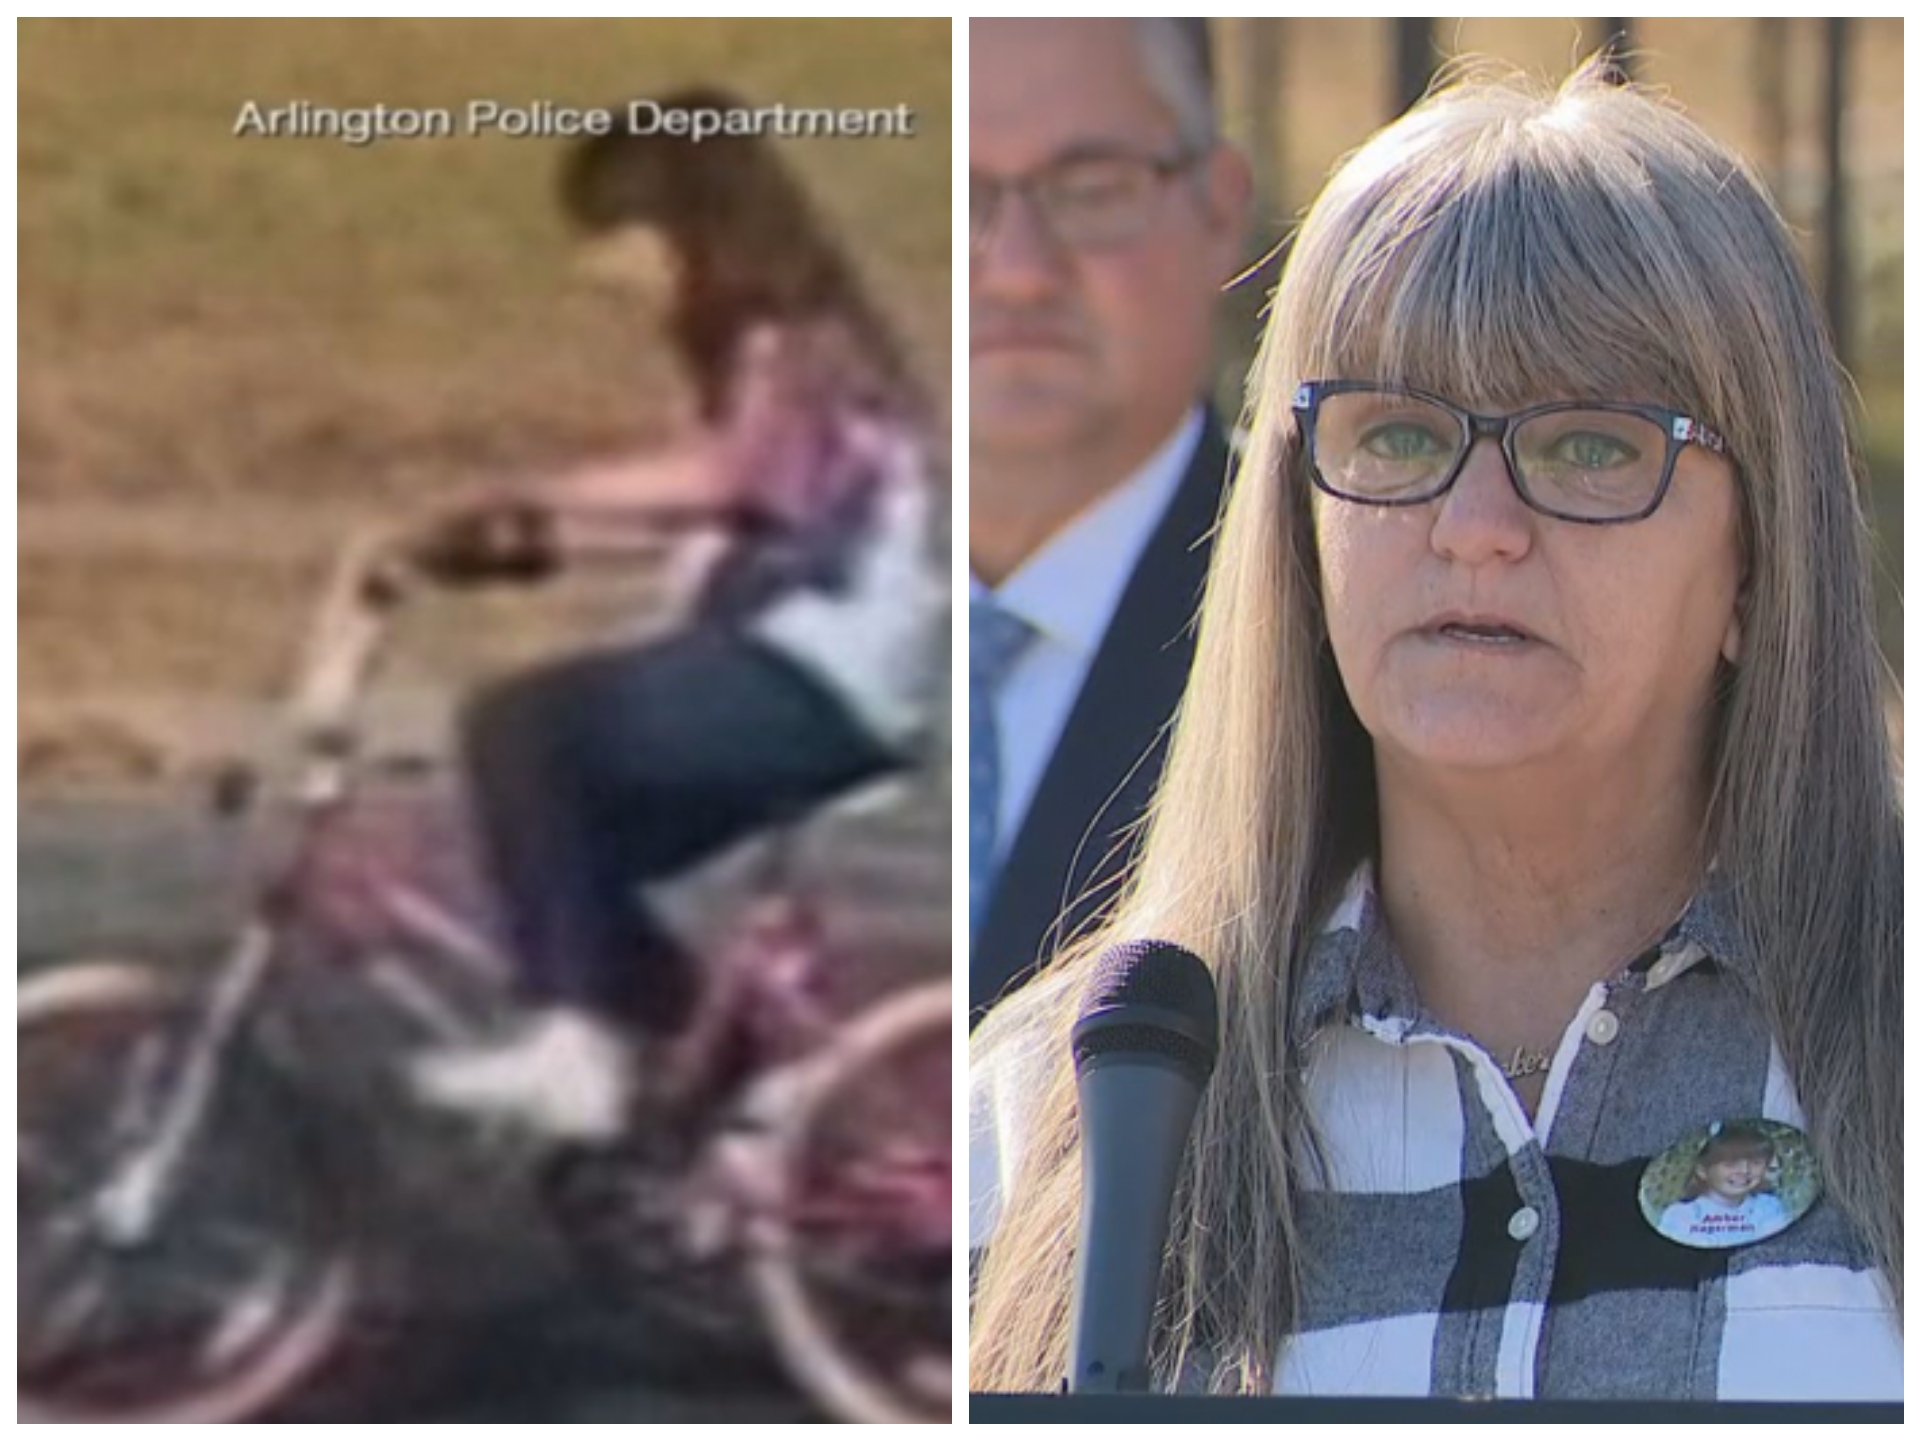 Amber Hagerman's murder, who inspired Amber Alerts, still unsolved 25 years later